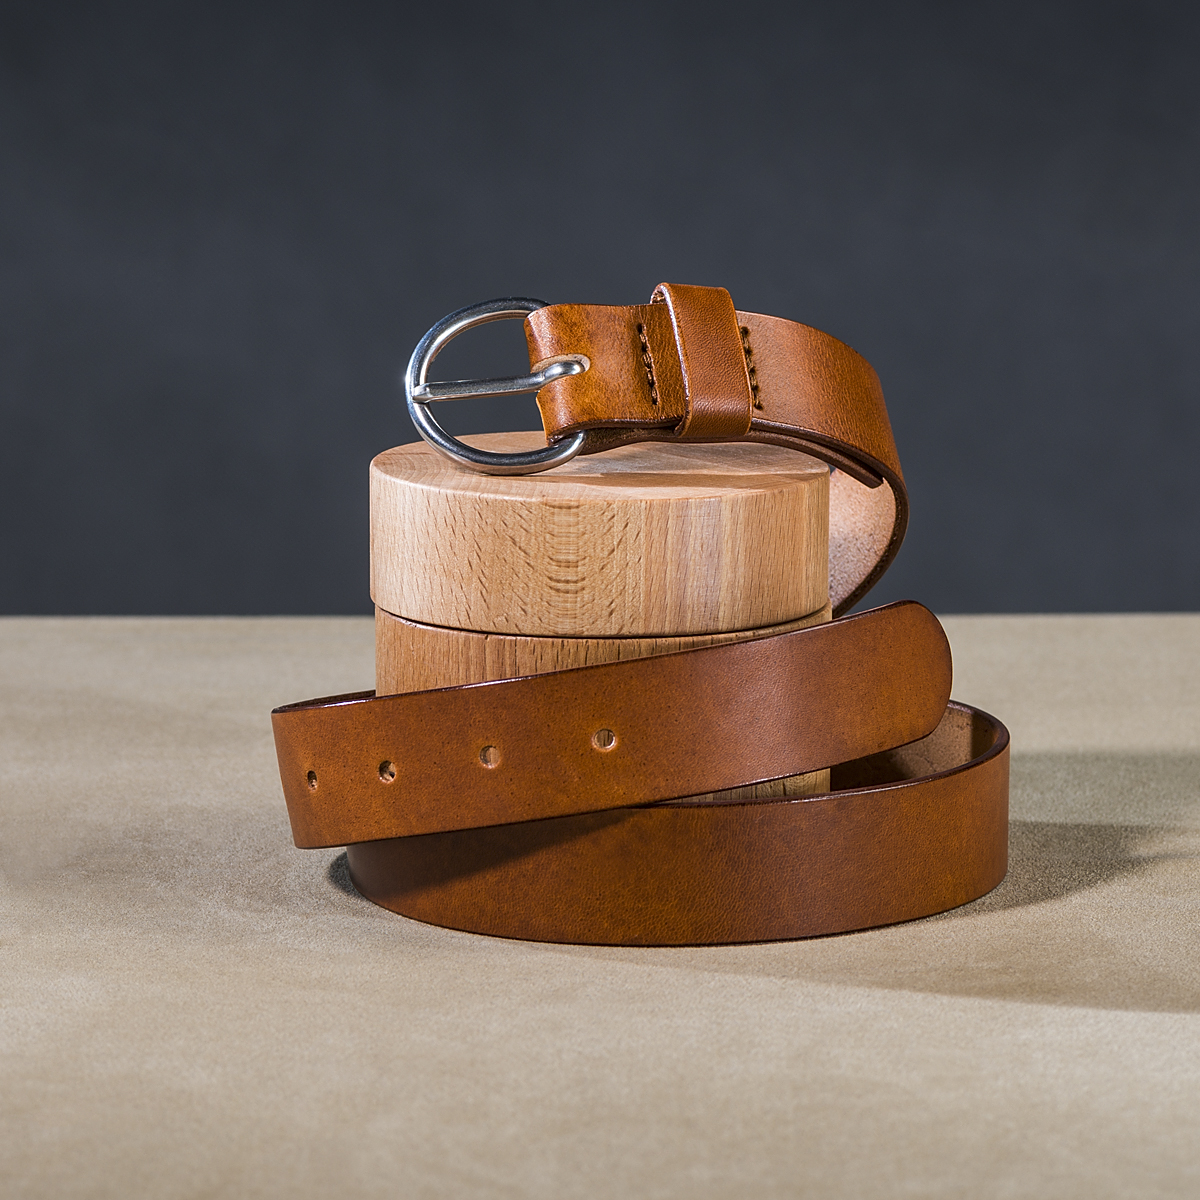 Leather belt for ladies Caramel 1.